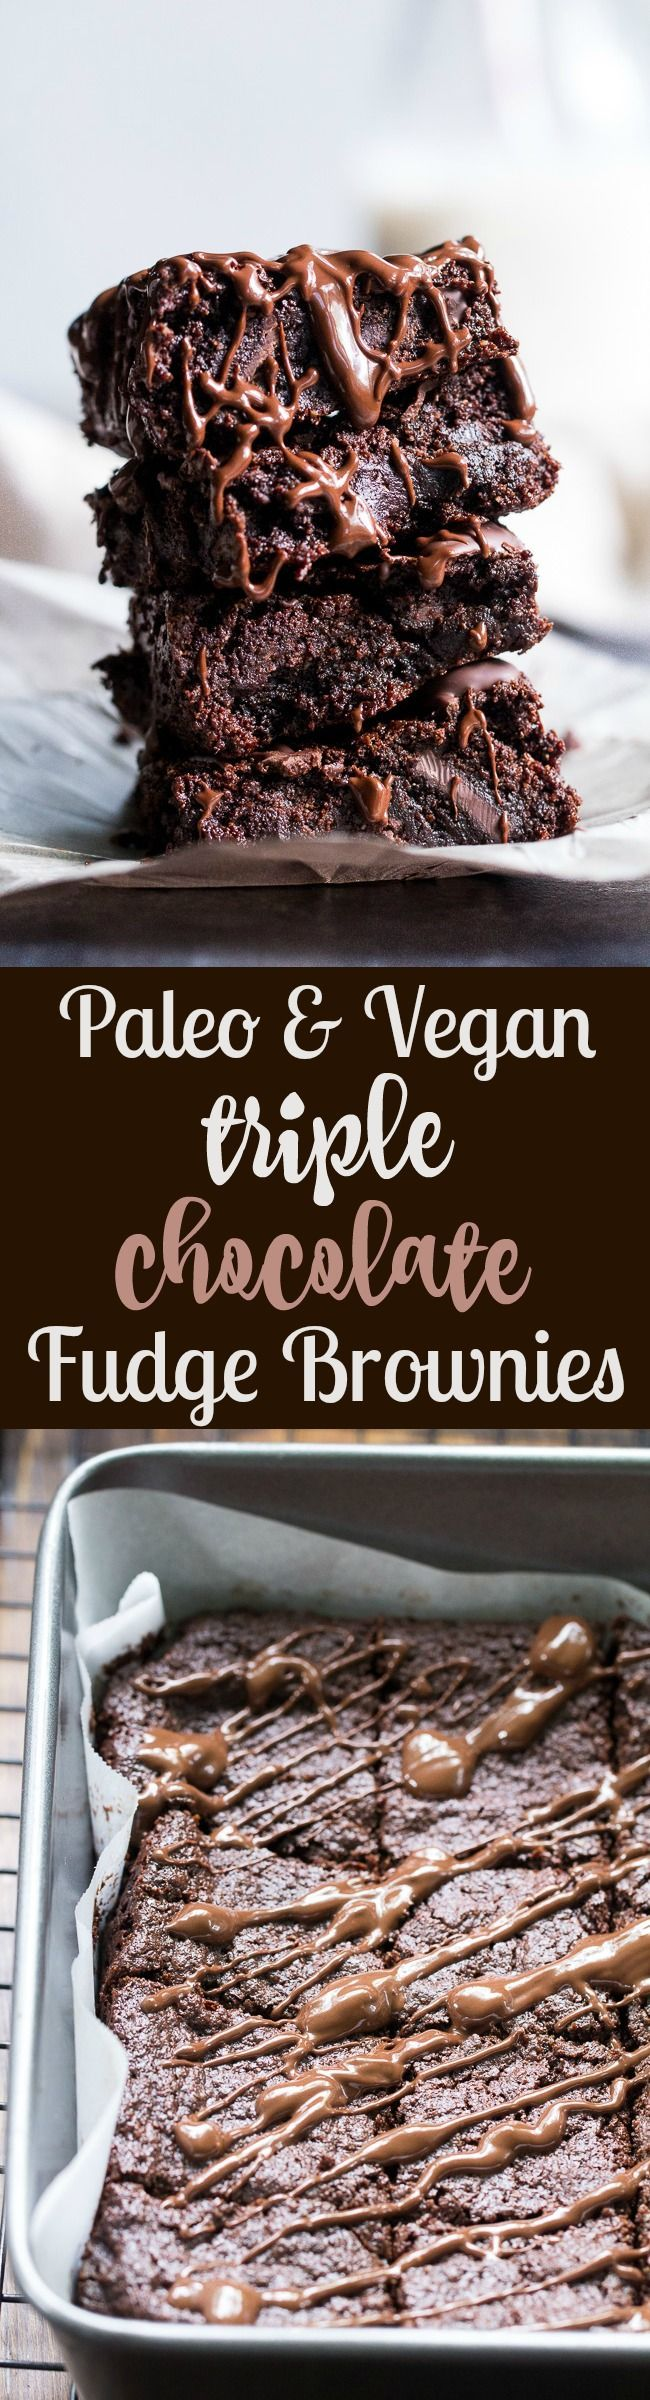 These are the most delicious fudgy paleo and vegan brownies that you'll ever make! Raw cacao, unsweetened chocolate and chocolate chunks make them extra chocolatey with rich flavor and chewy fudge-like texture. Kid approved, gluten-free, dairy-free and great when you need a healthy chocolate indulgence!Fudgy Triple Chocolate Paleo & Vegan Brownies  #justeatrealfood #paleorunningmomma